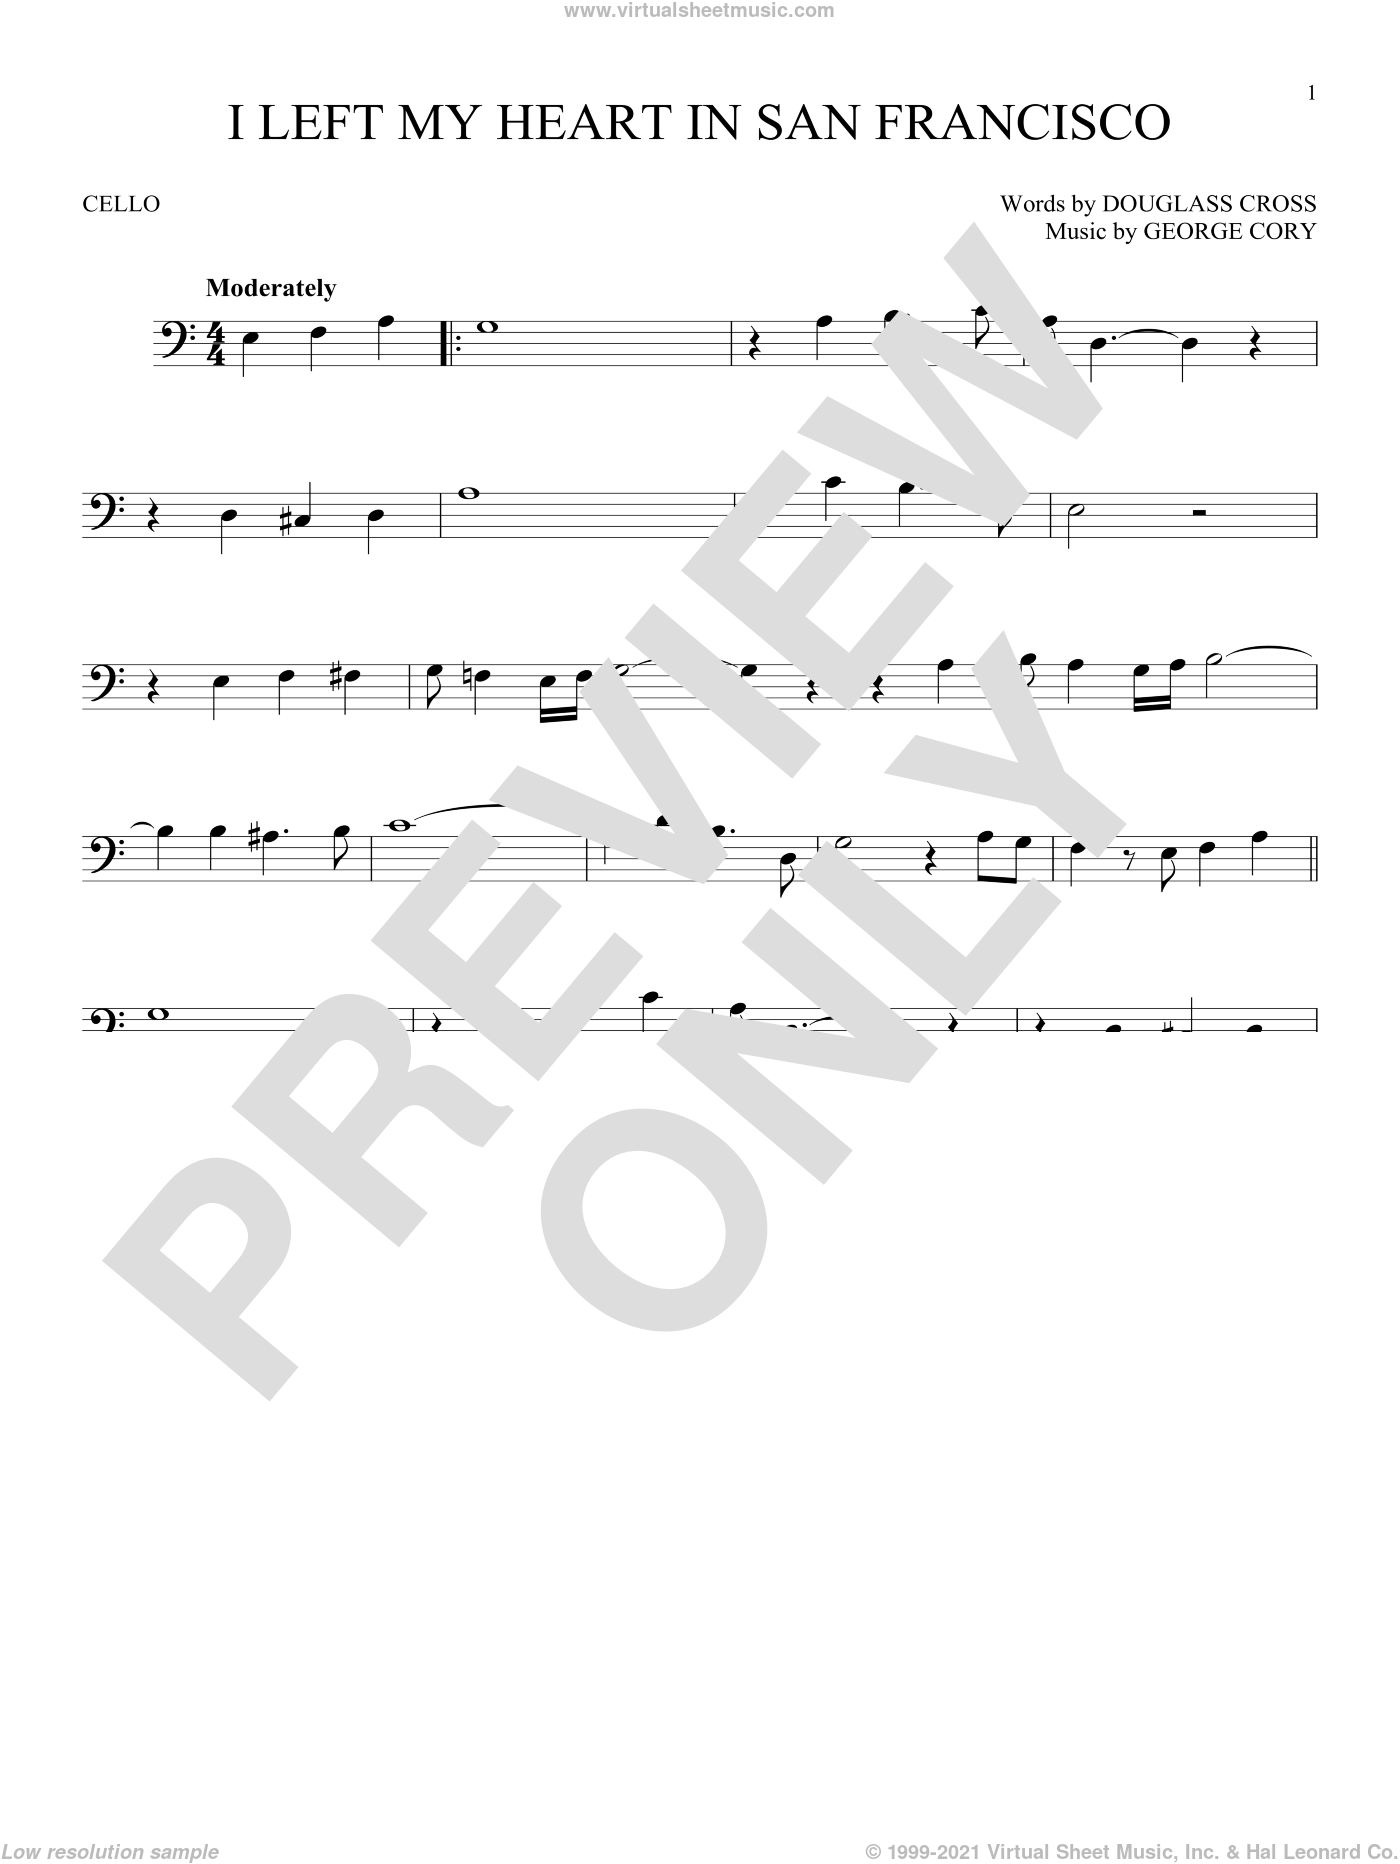 I Left My Heart In San Francisco sheet music for cello solo by Tony Bennett, Douglass Cross and George Cory, intermediate skill level